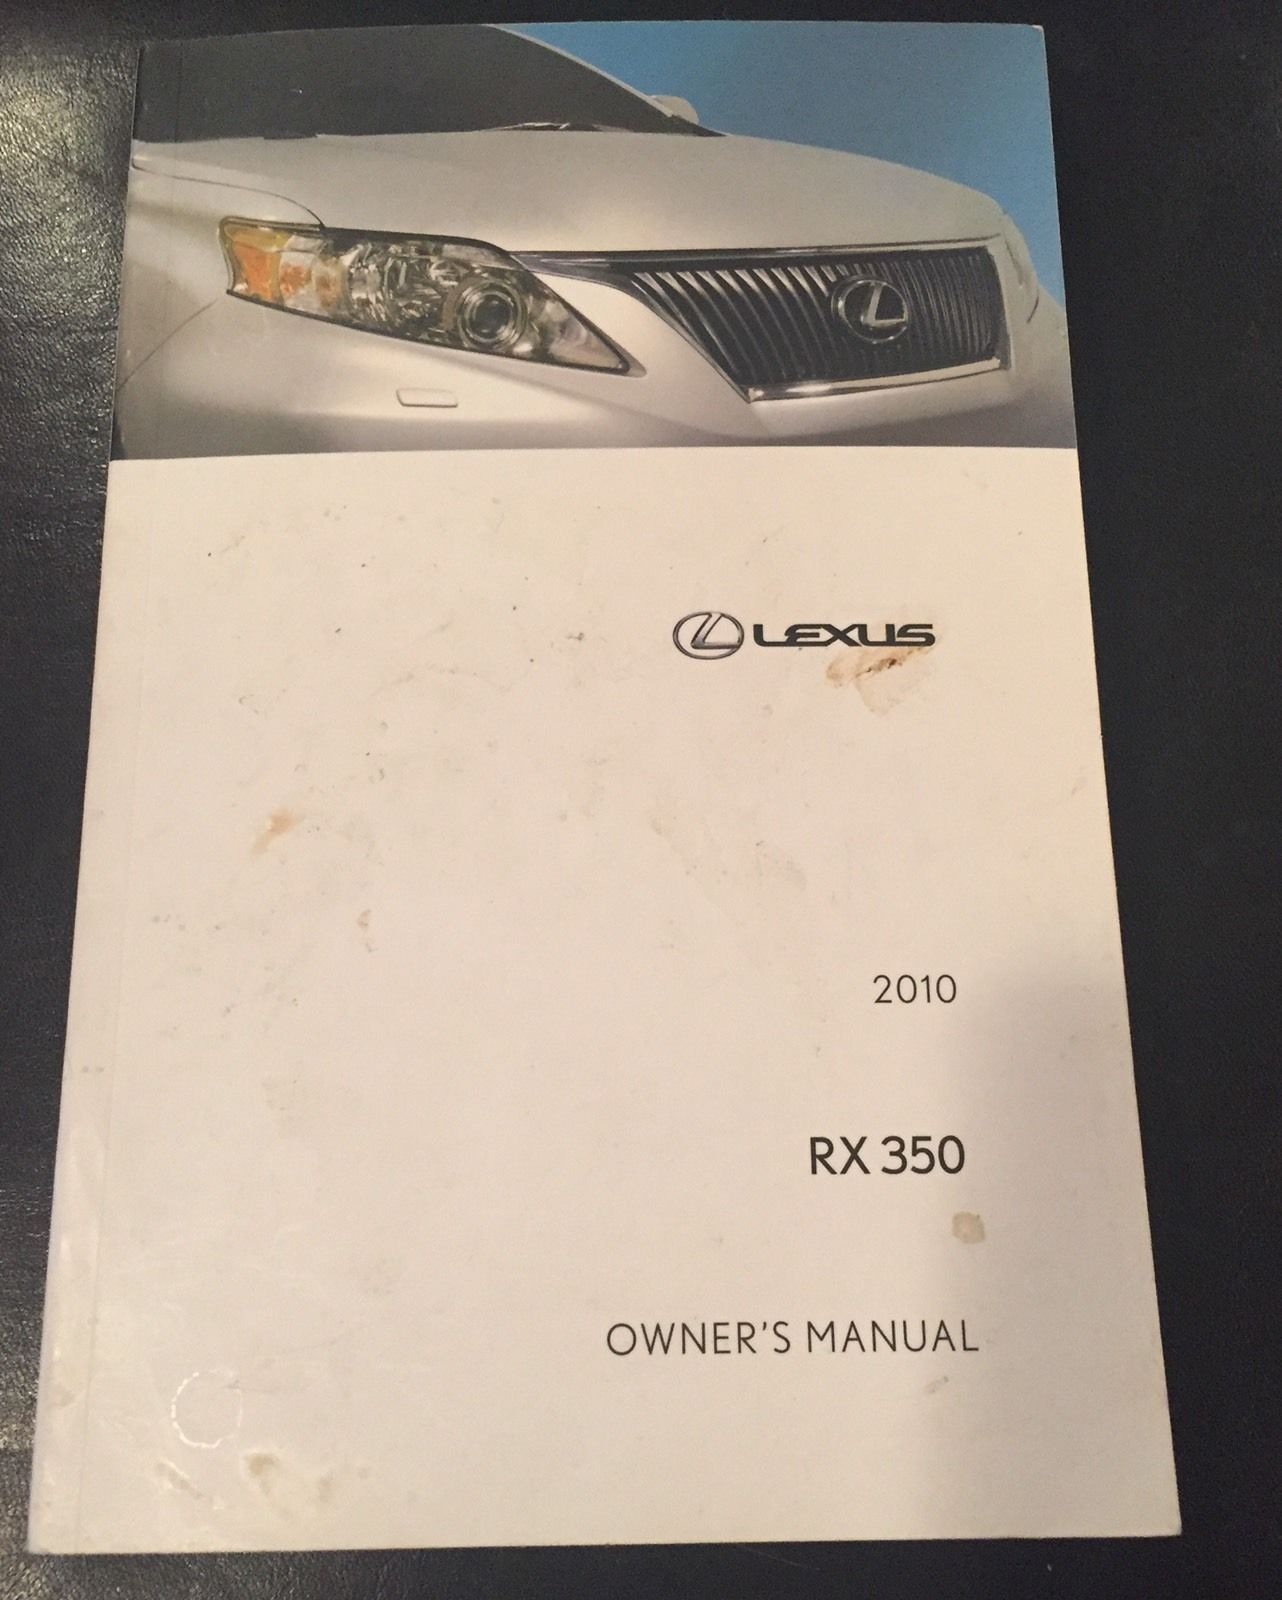 awesome amazing 2010 lexus rx350 owners manual 2018 2019 check more rh pinterest com 2010 lexus 450h owner's manual 2010 lexus rx 350 owners manual pdf